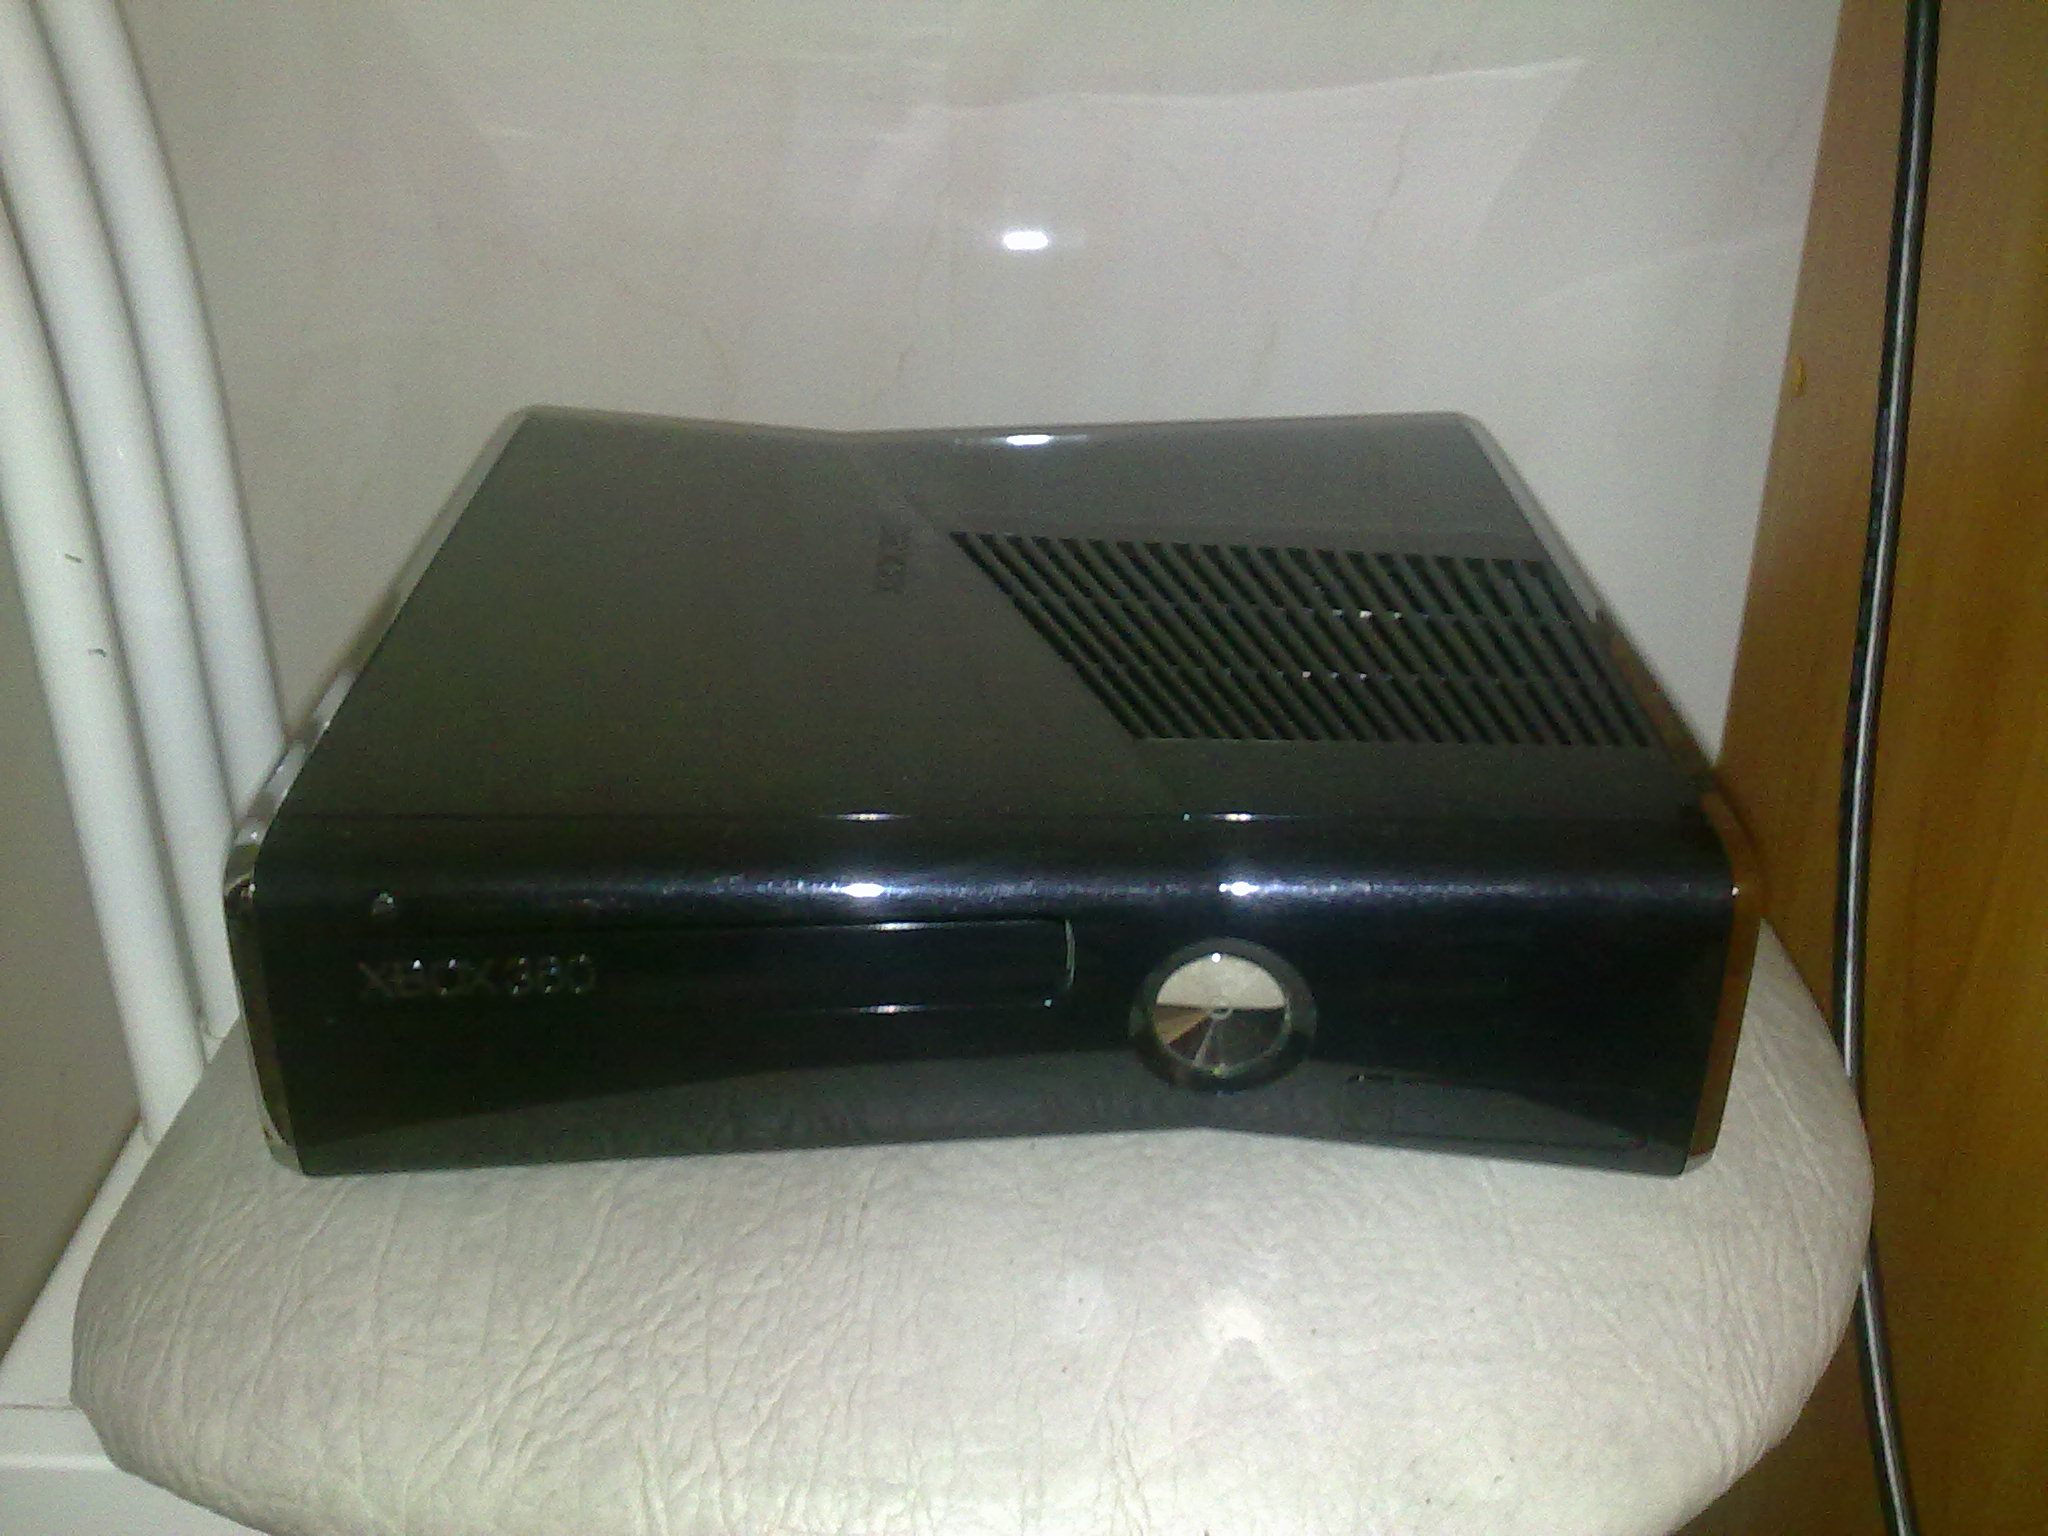 Bnc 401k online delivery xbox 360